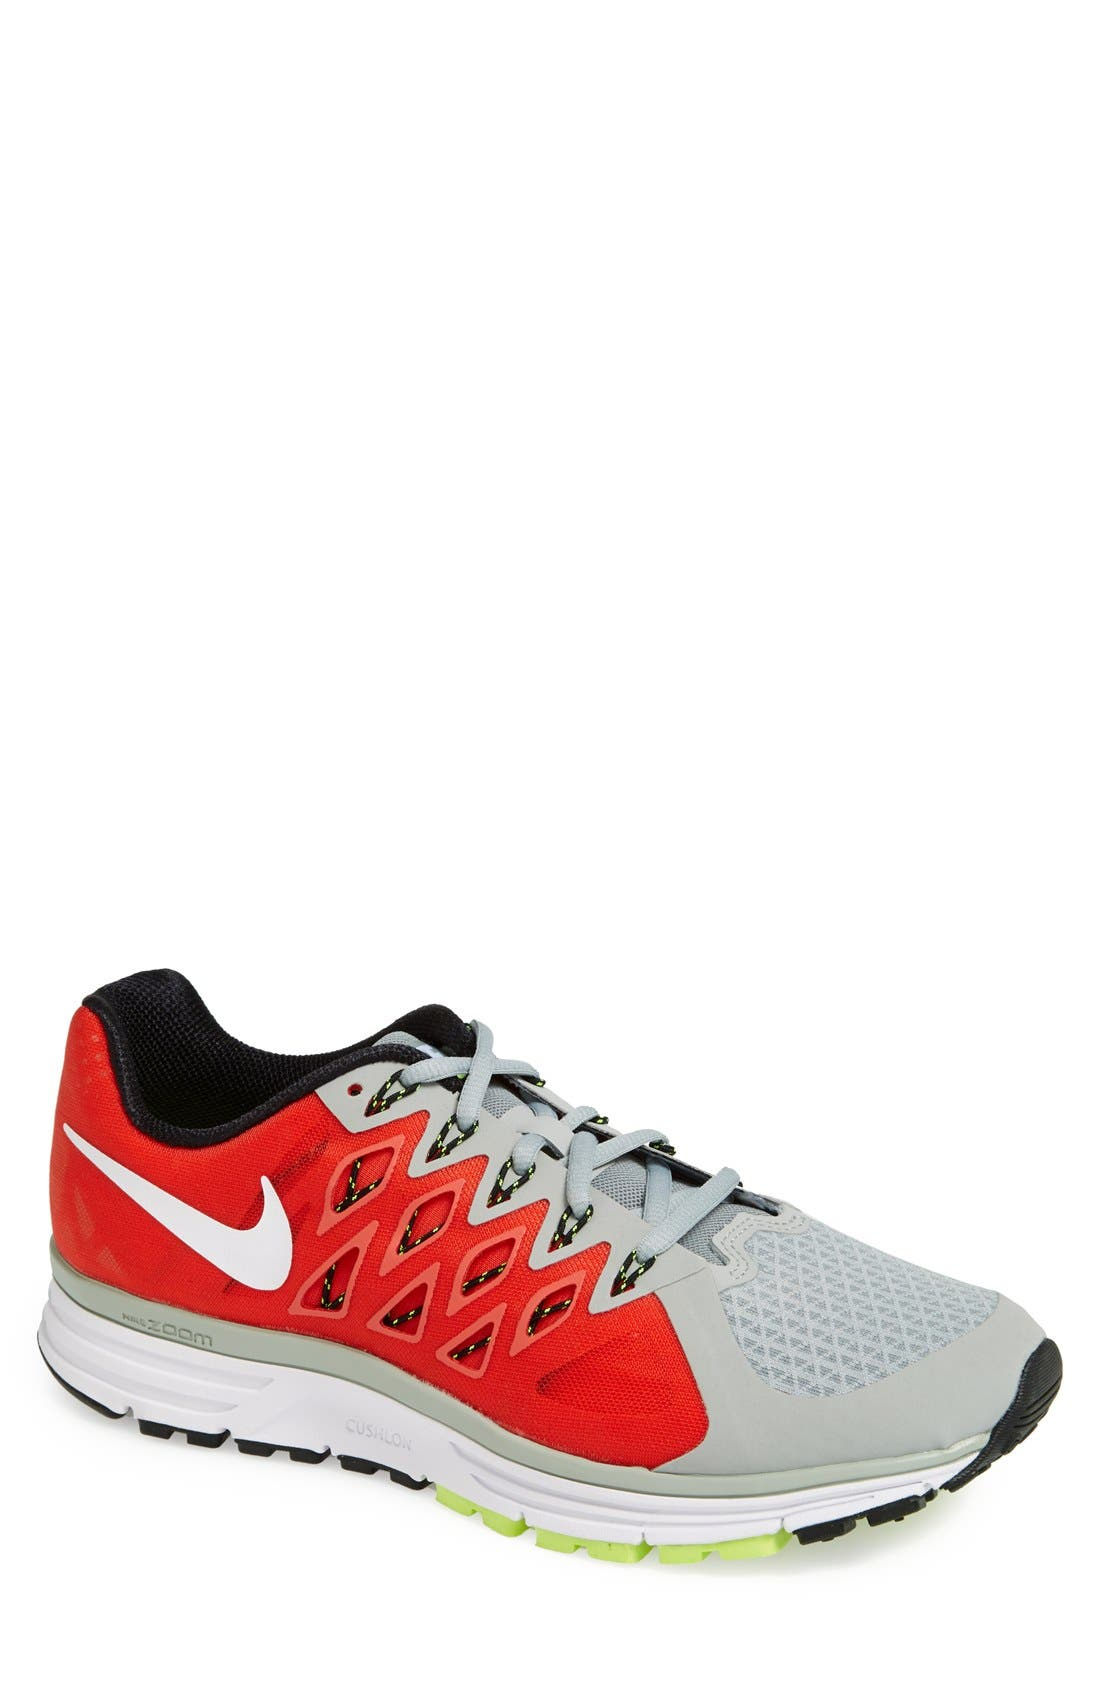 Main Image - Nike 'Zoom Vomero 9' Running Shoe (Men)